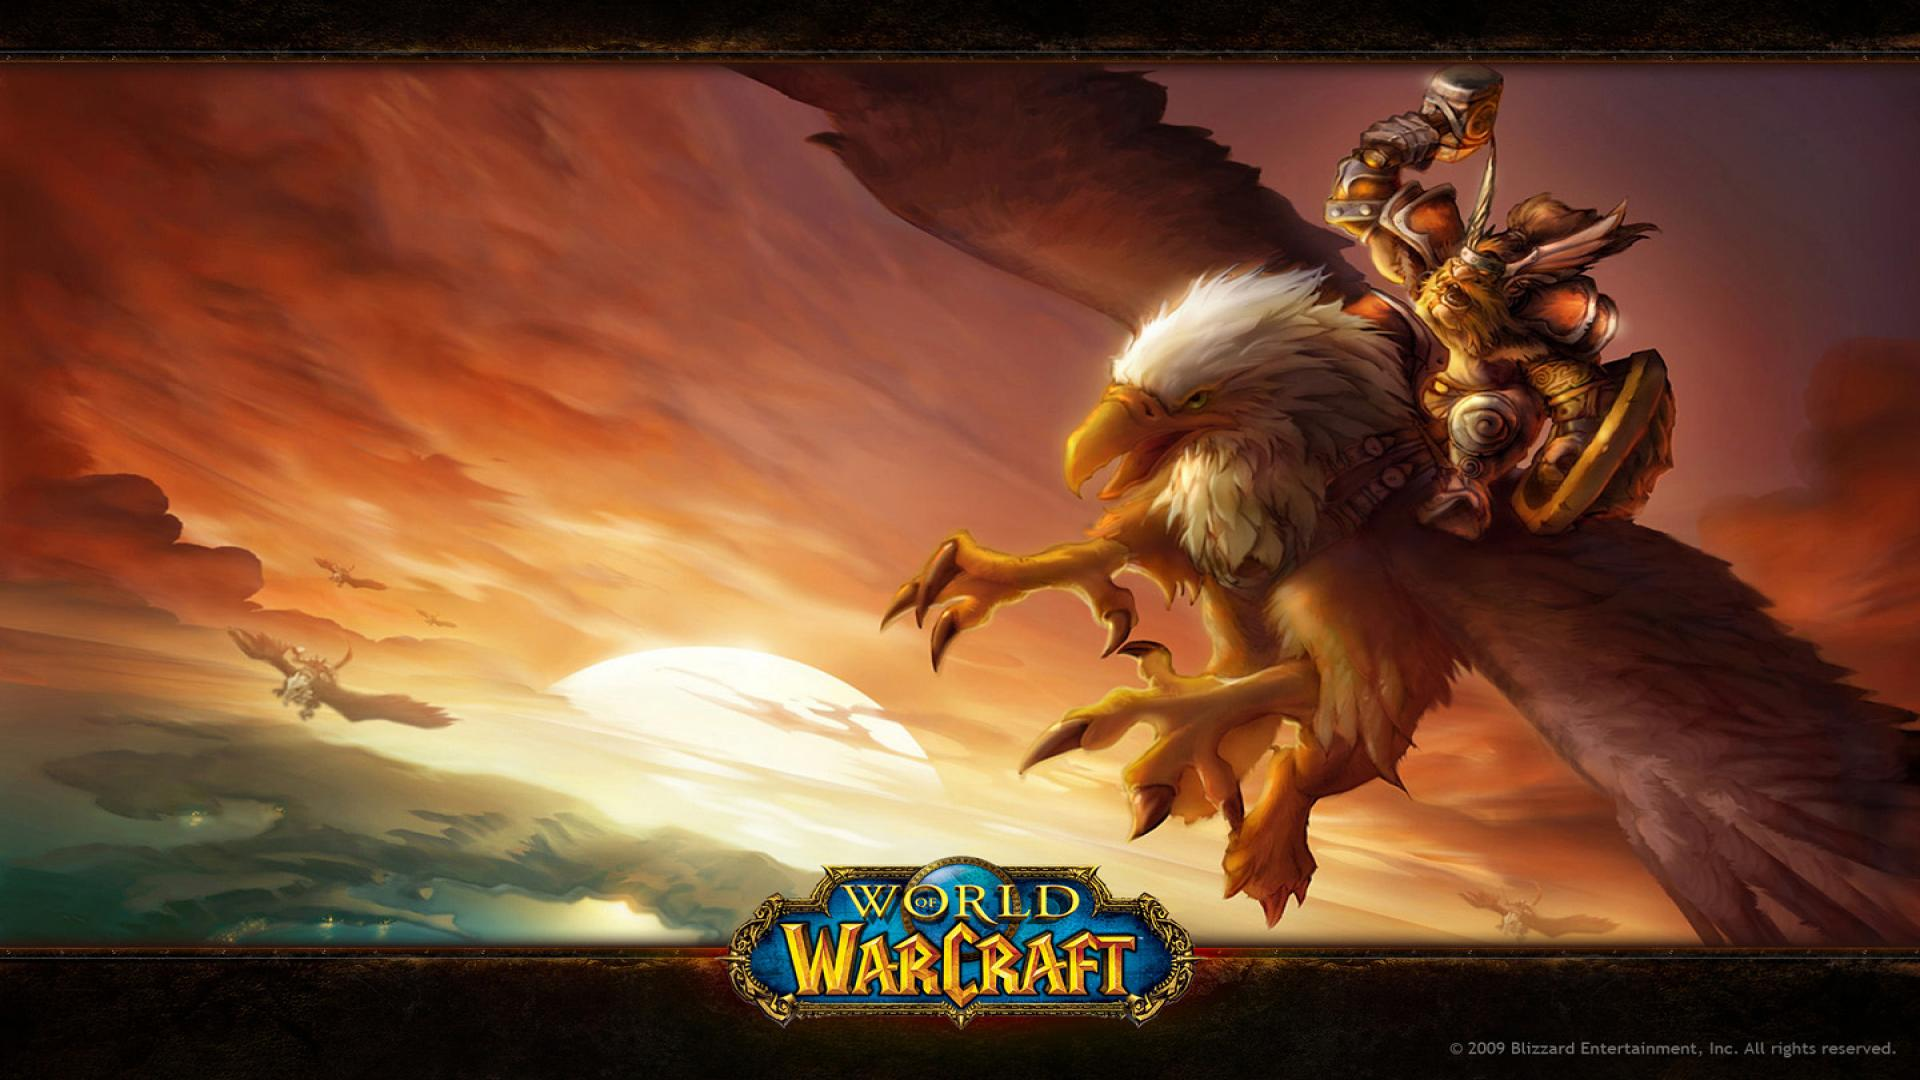 1920x1080-data-out-258-35899098-world-of-warcraft